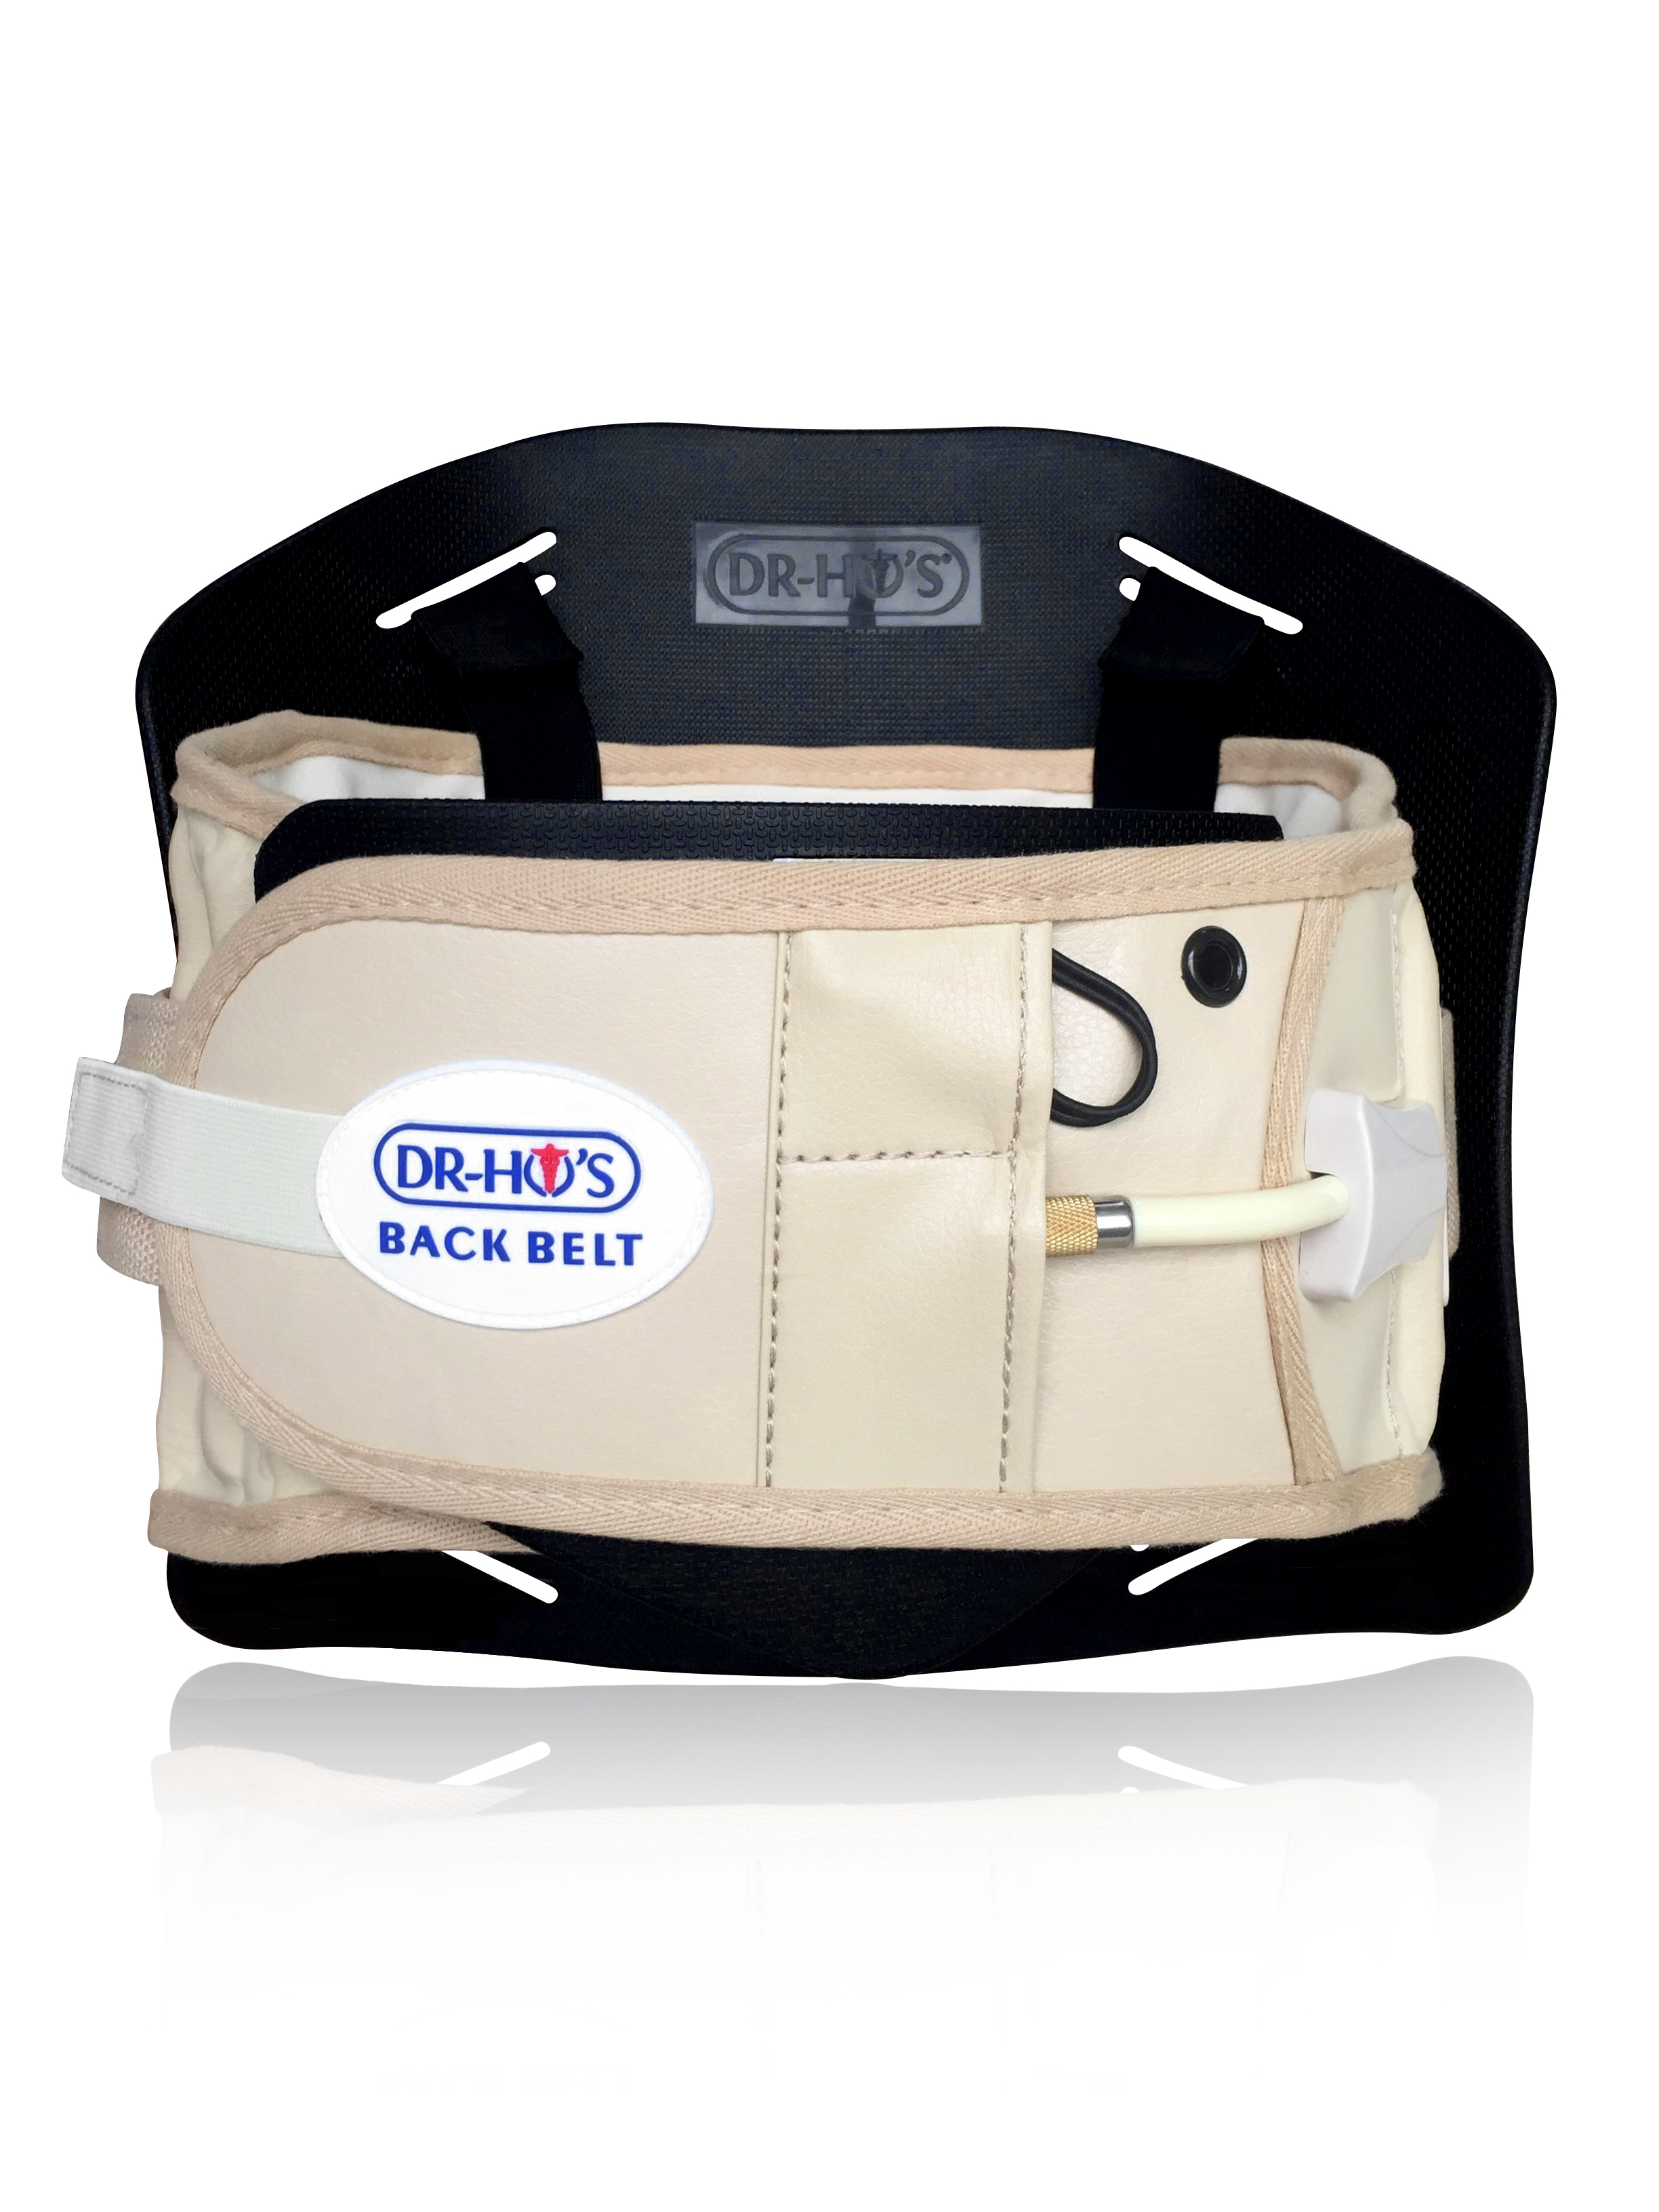 Milliken Medical Featured Products - Dr. Ho's Decompression Belt with Panel - Click to Shop